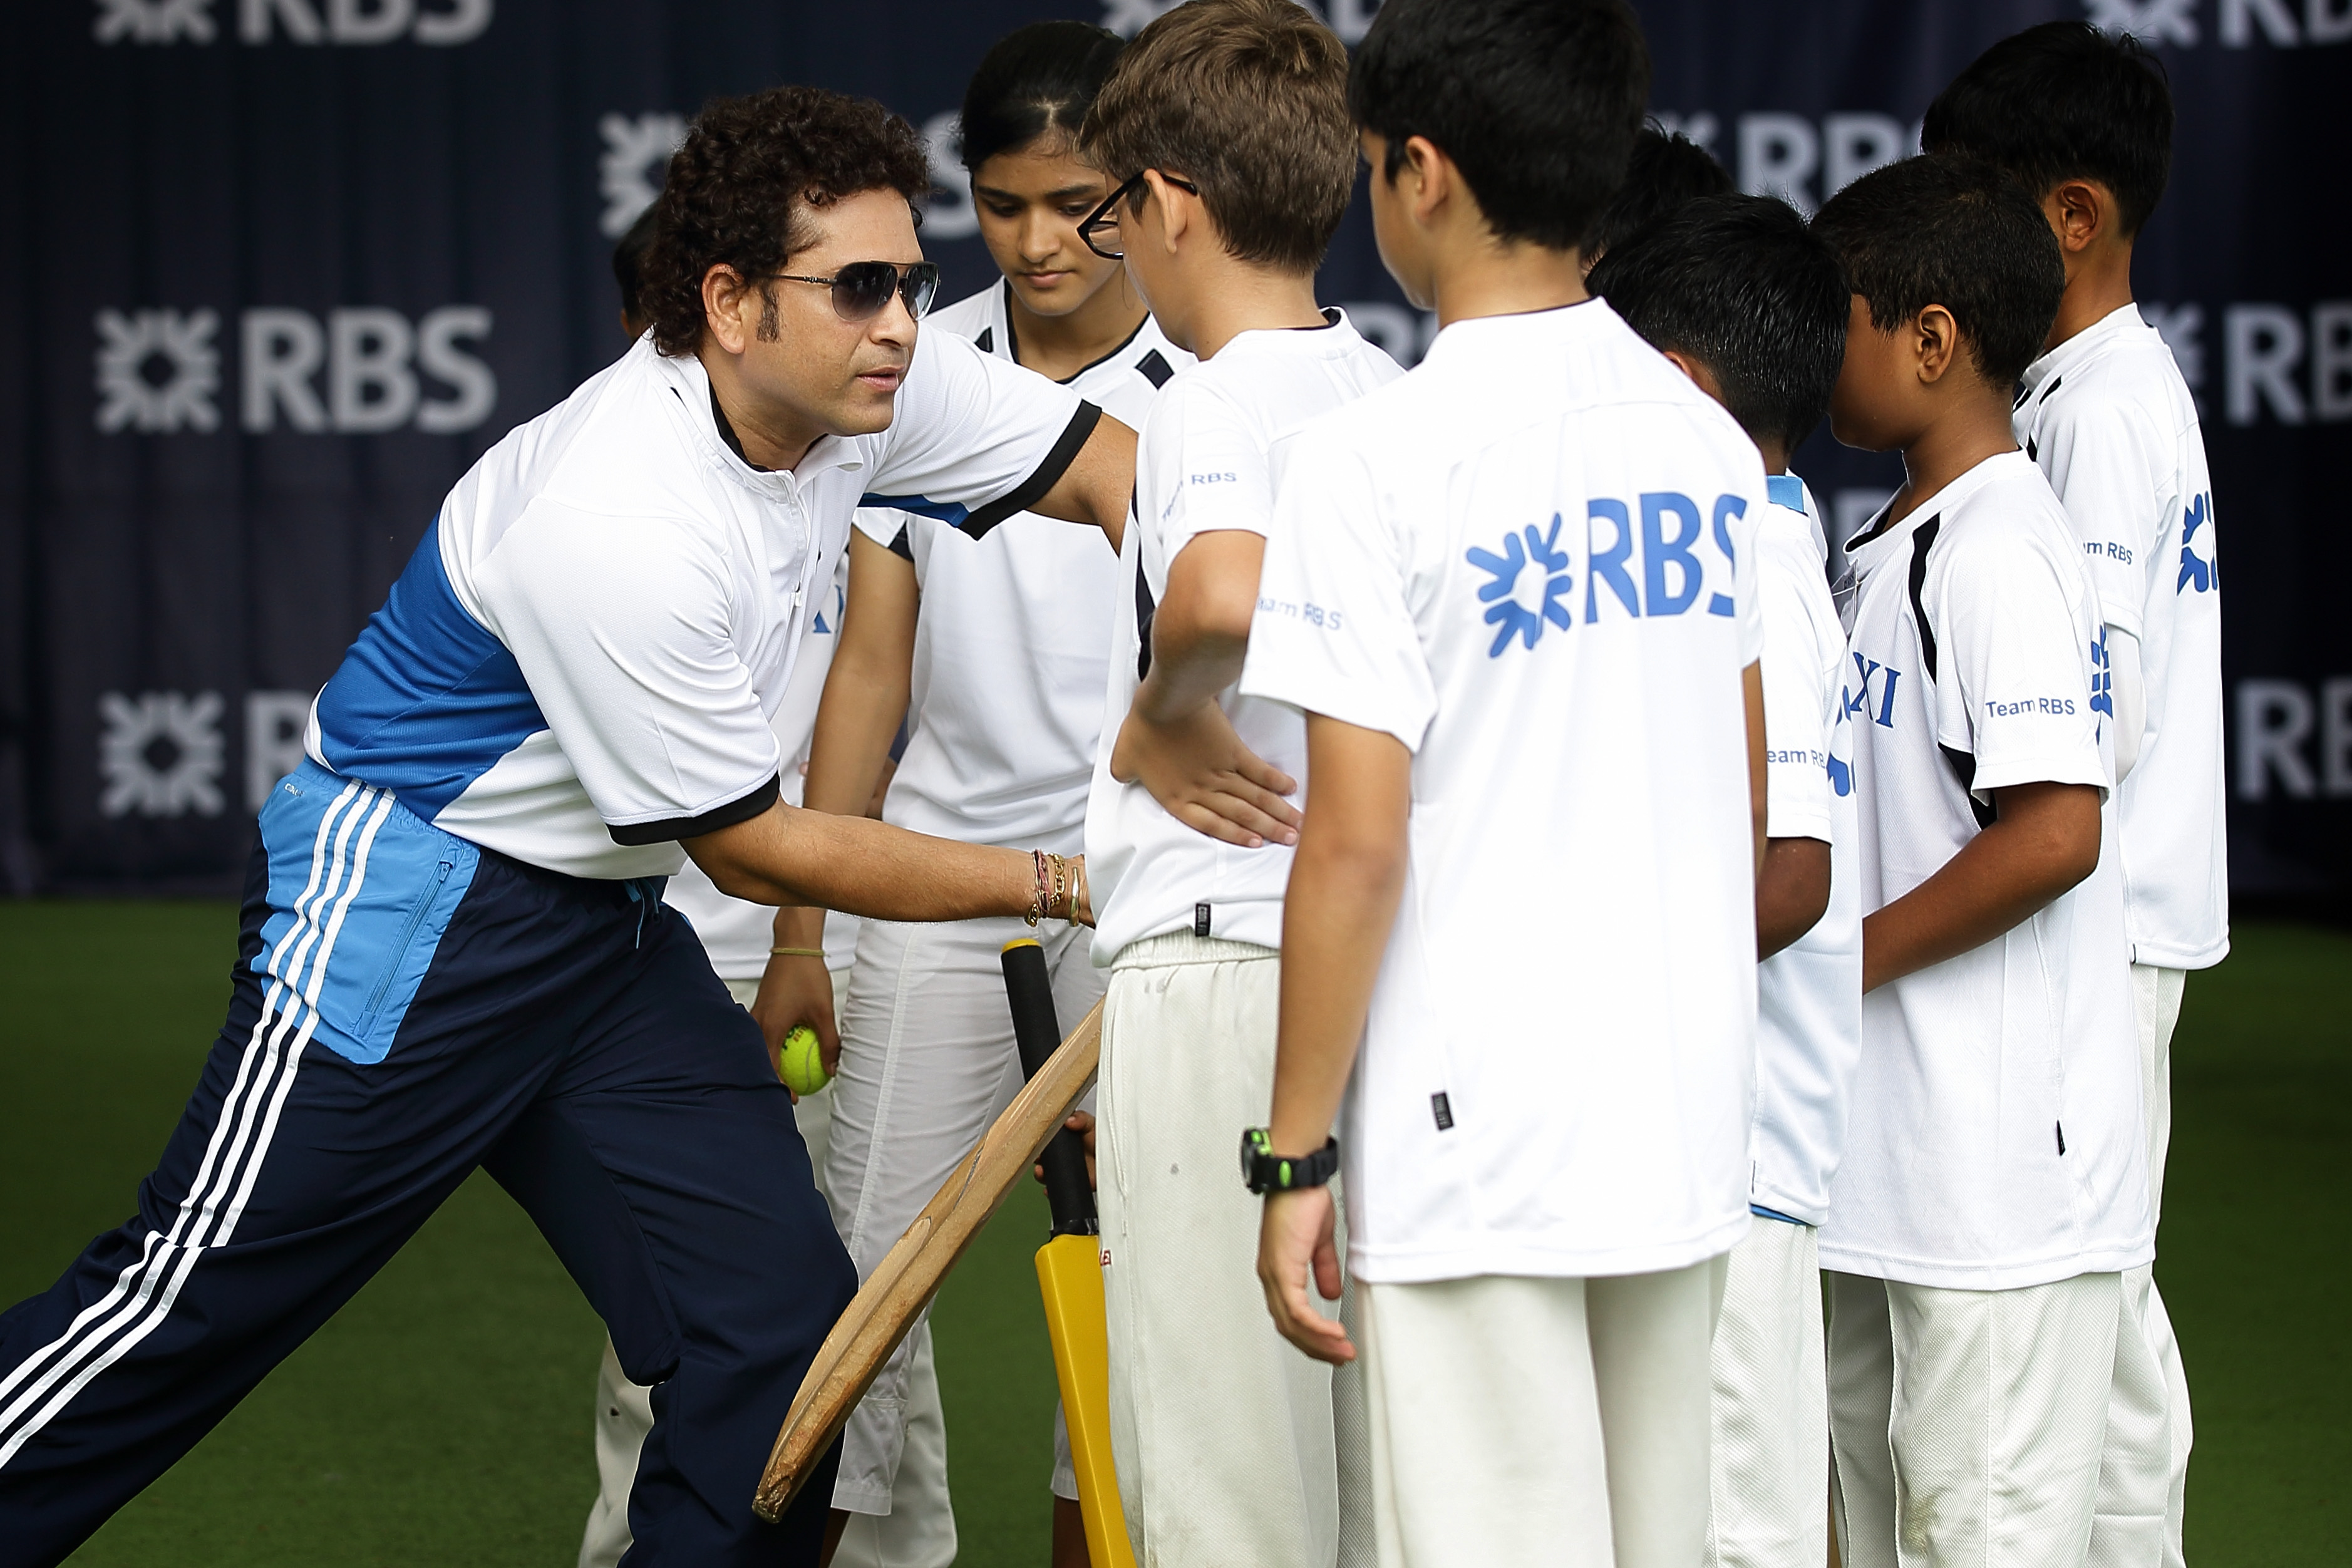 Sachin Tendulkar conducts a masterclass session with young cricketers | Getty